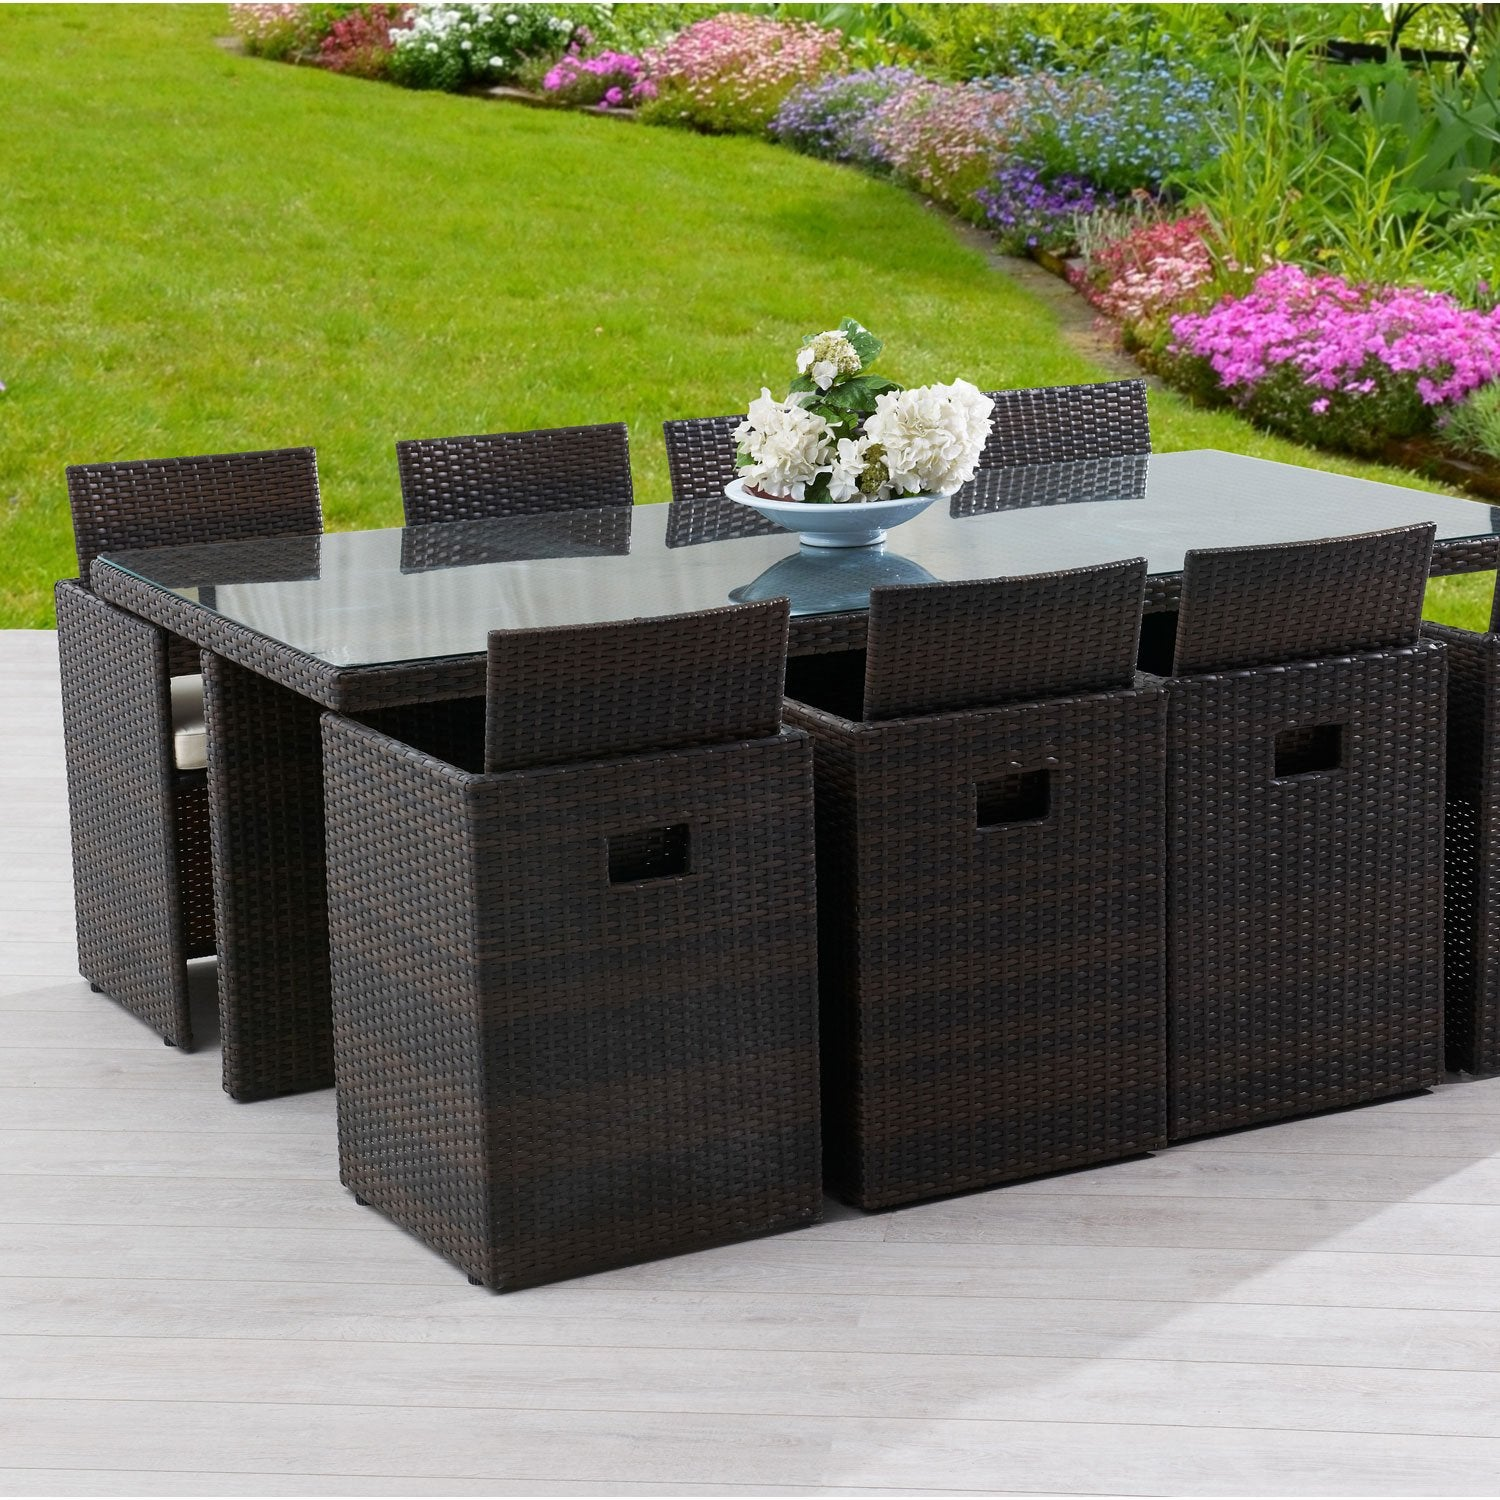 Salon de jardin encastrable r sine tress e marron 1 table for Mobilier de jardin leroy merlin